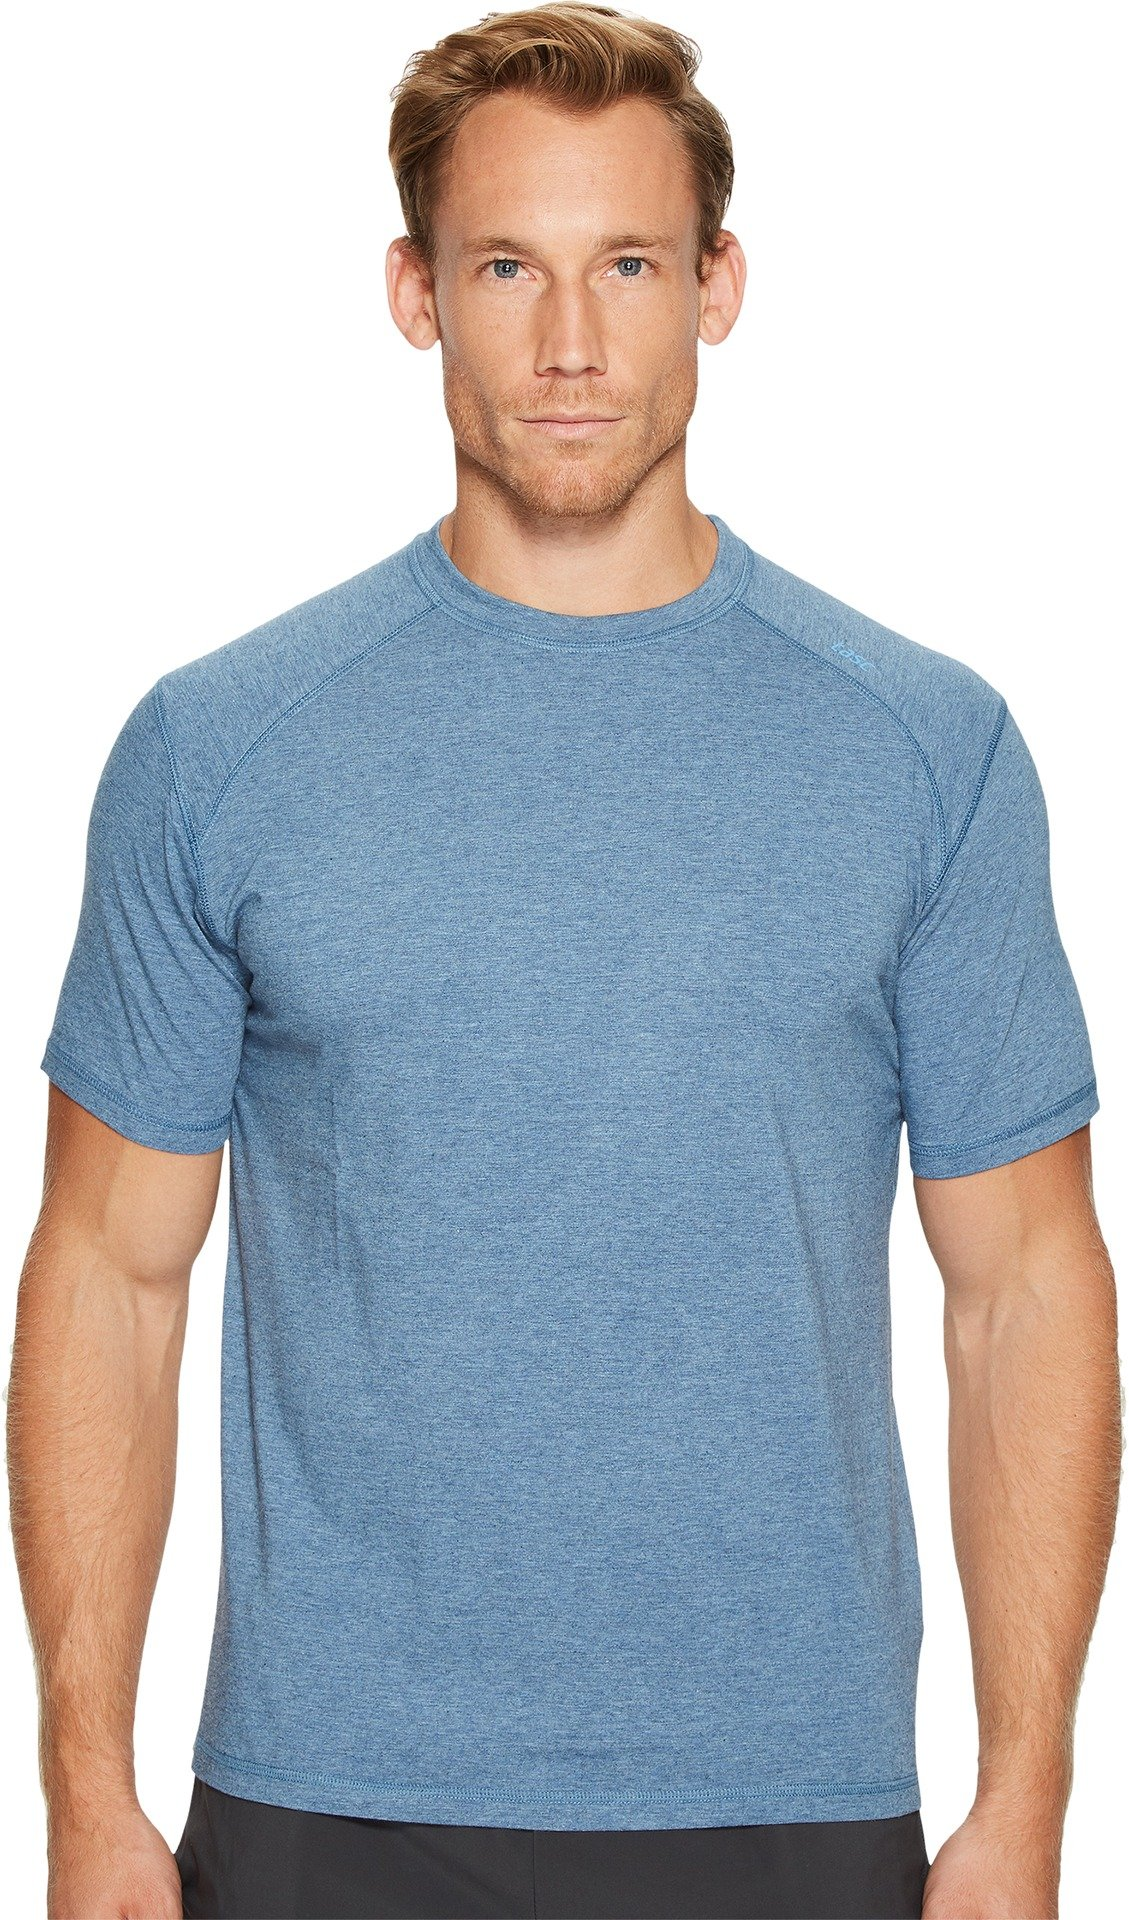 tasc Performance Carrollton T-Shirt, Indigo Heather, Small by tasc Performance